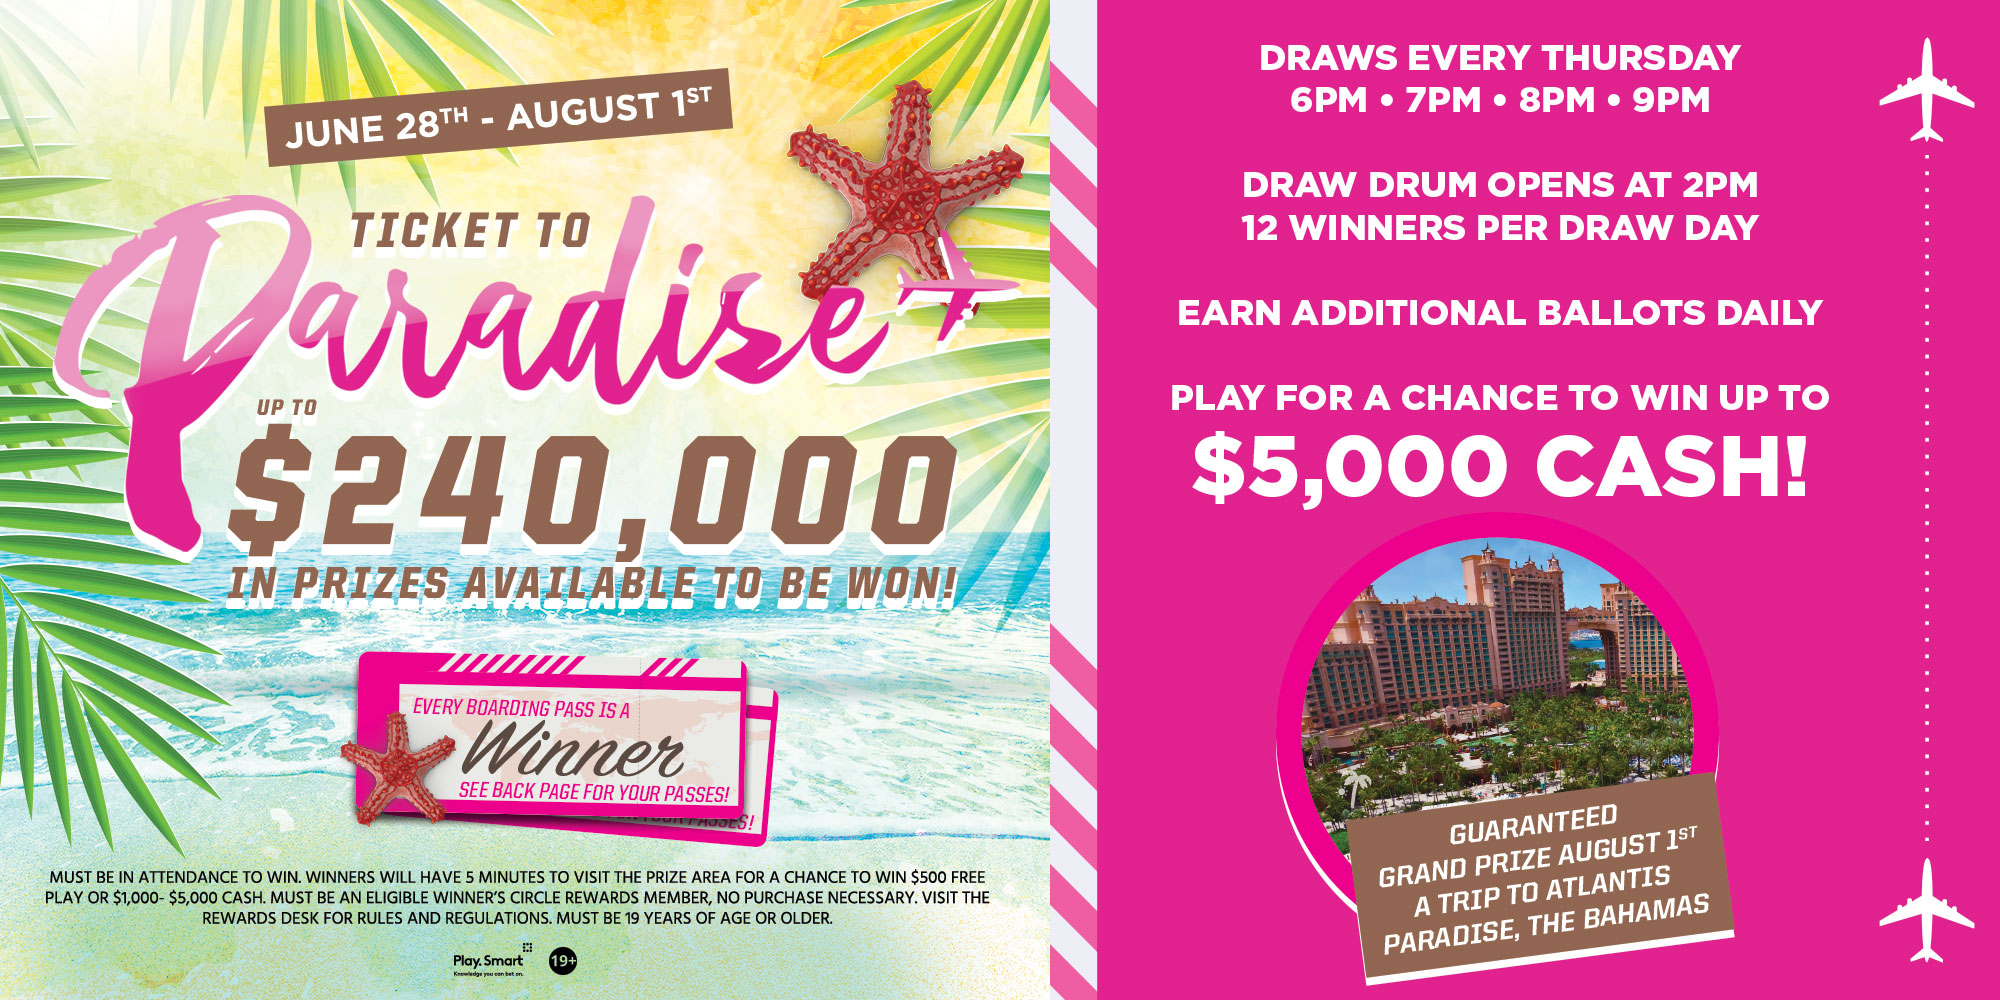 Ticket to Paradise details